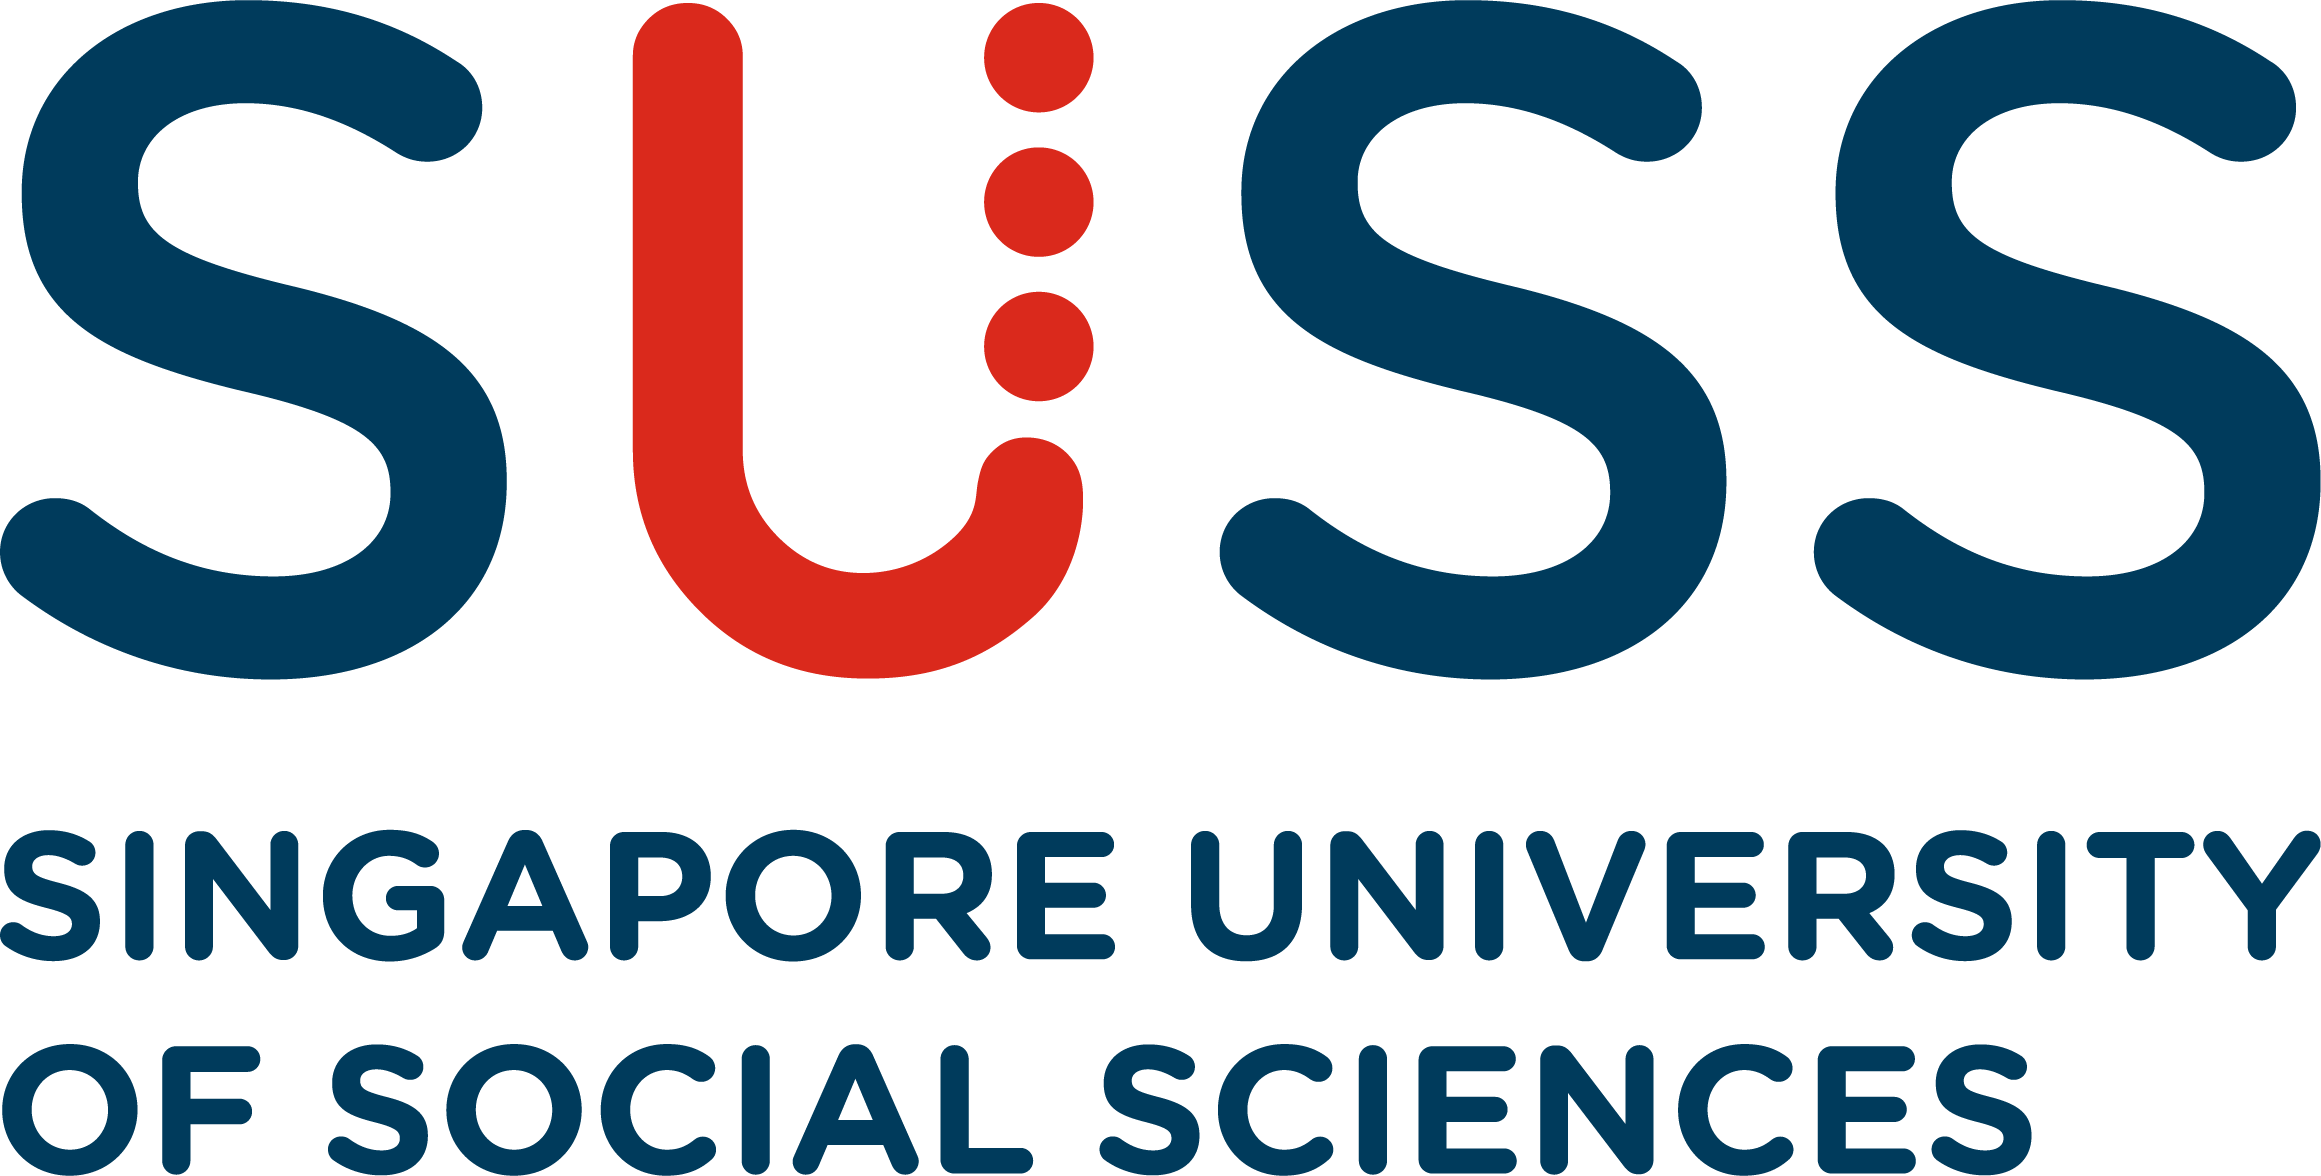 Singapore University of Social Science